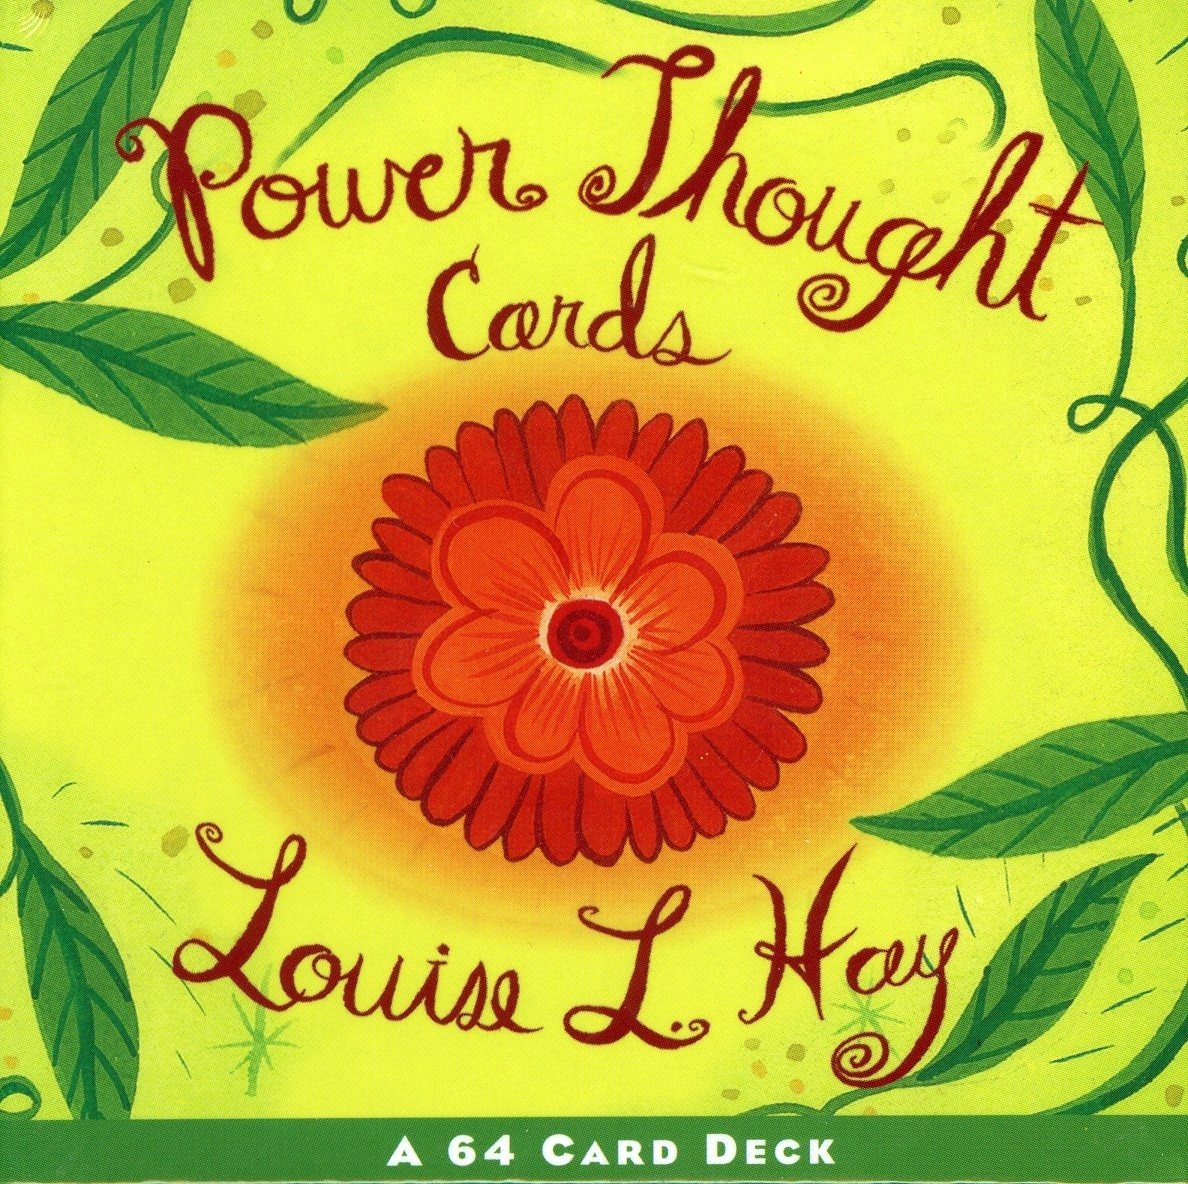 Power Thought Cards Card Deck product image